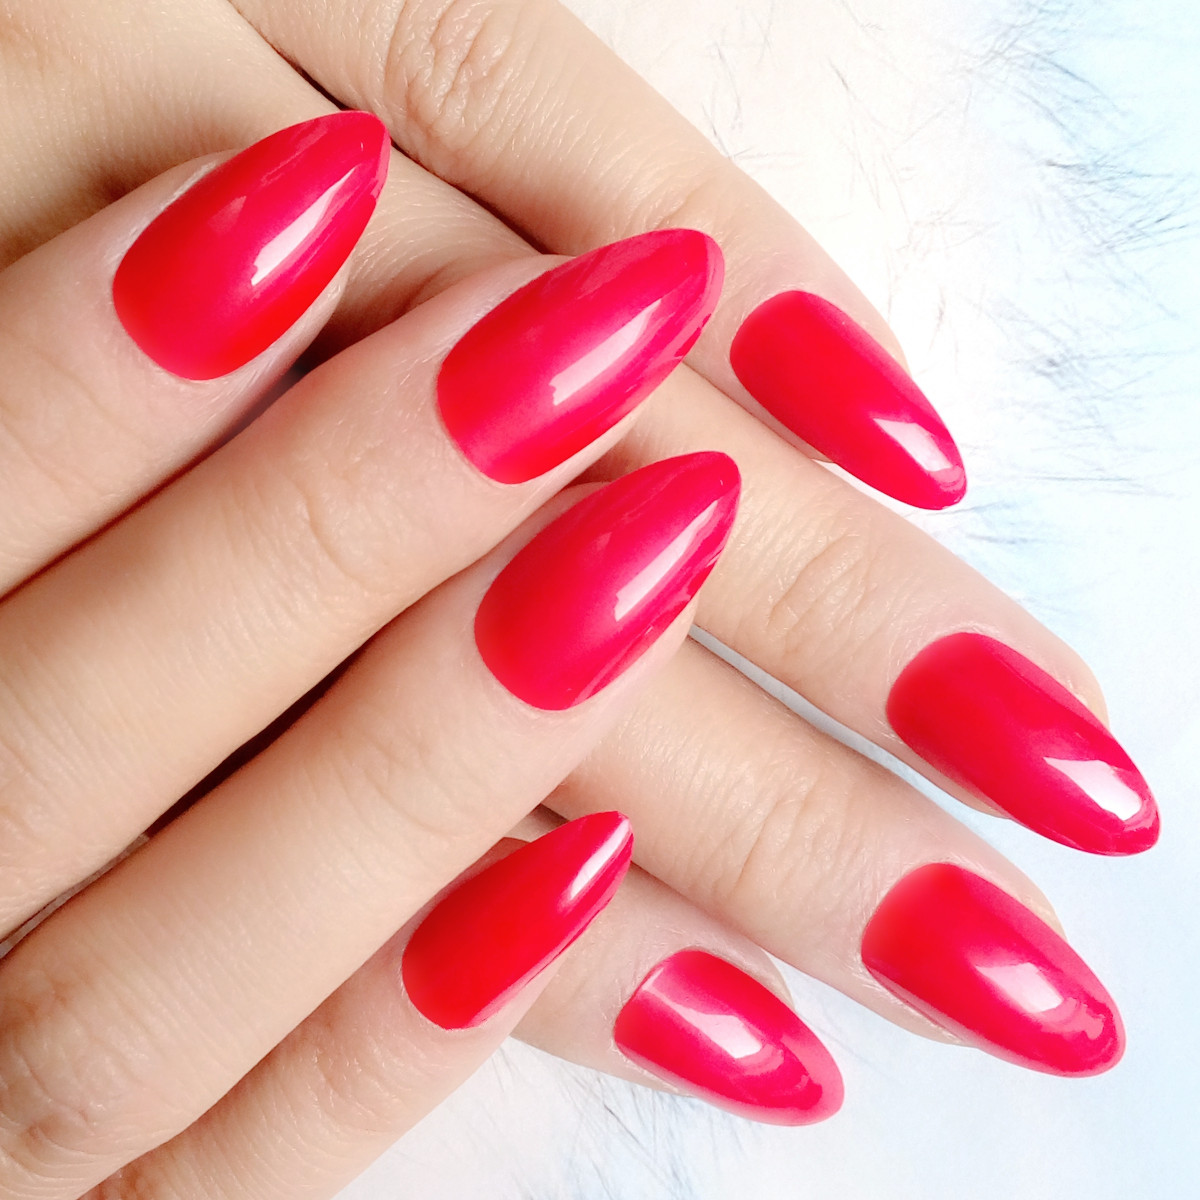 Y Red False Nails Pointed Shape Fake Short Stiletto Tips Full Cover Diy Manicure Material P63e In From Beauty Health On